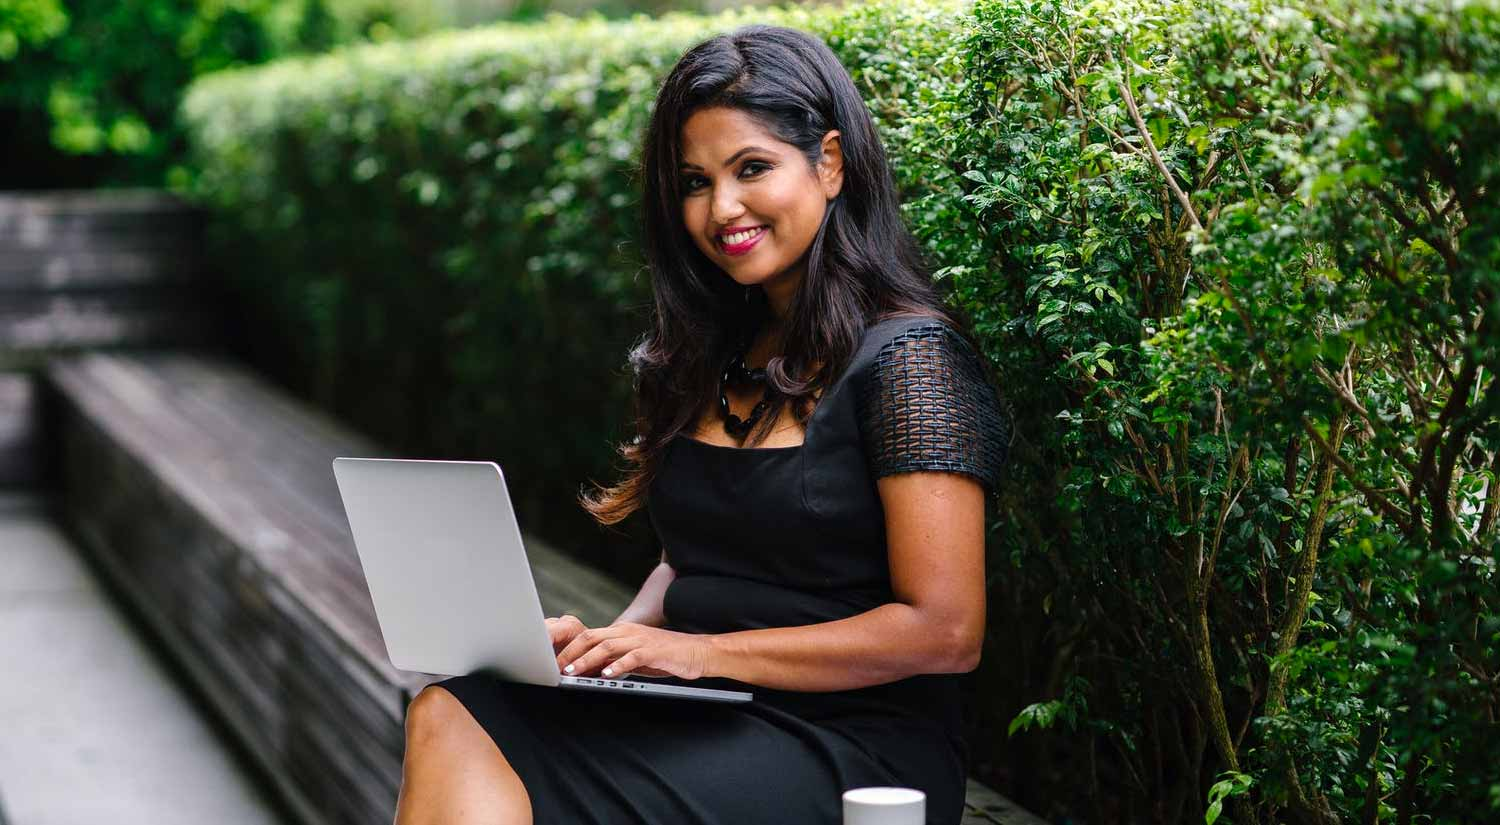 Women Led Business TIps & Resources in the Workplace